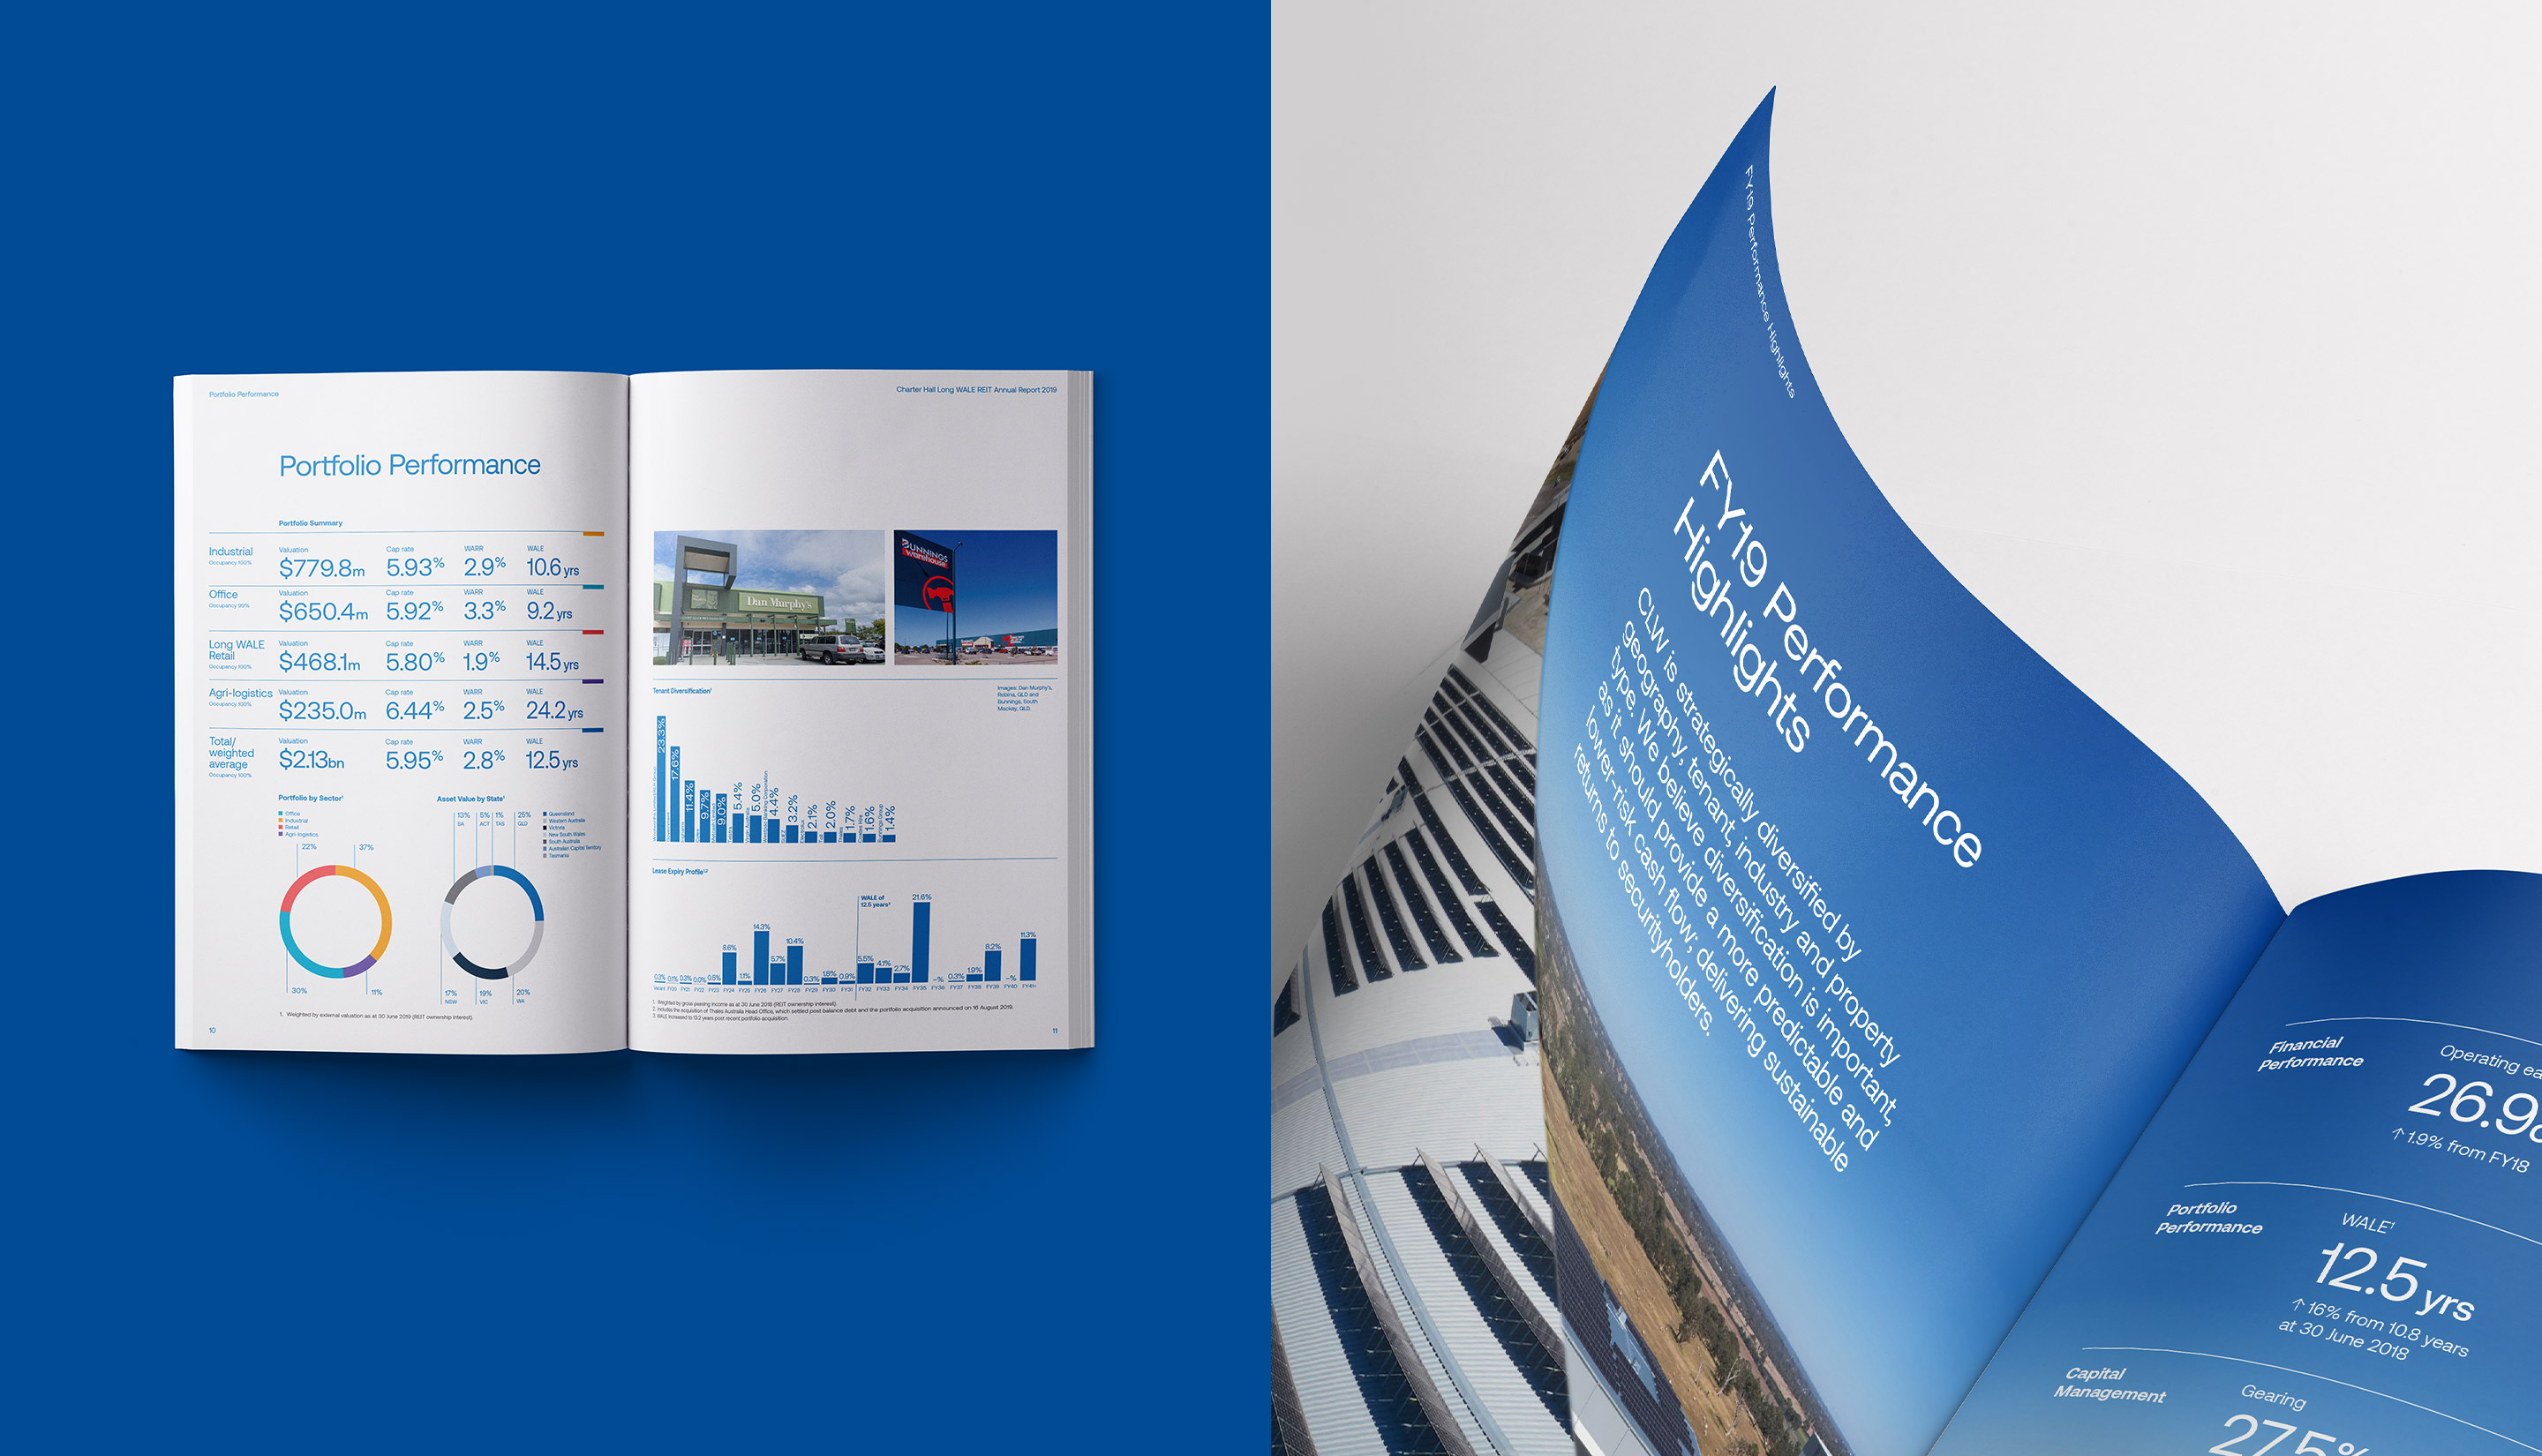 Charter Hall Annual Report. 'Portfolio Performance' inside spread and 'FY19 Performance Highlights' inside spread detail.